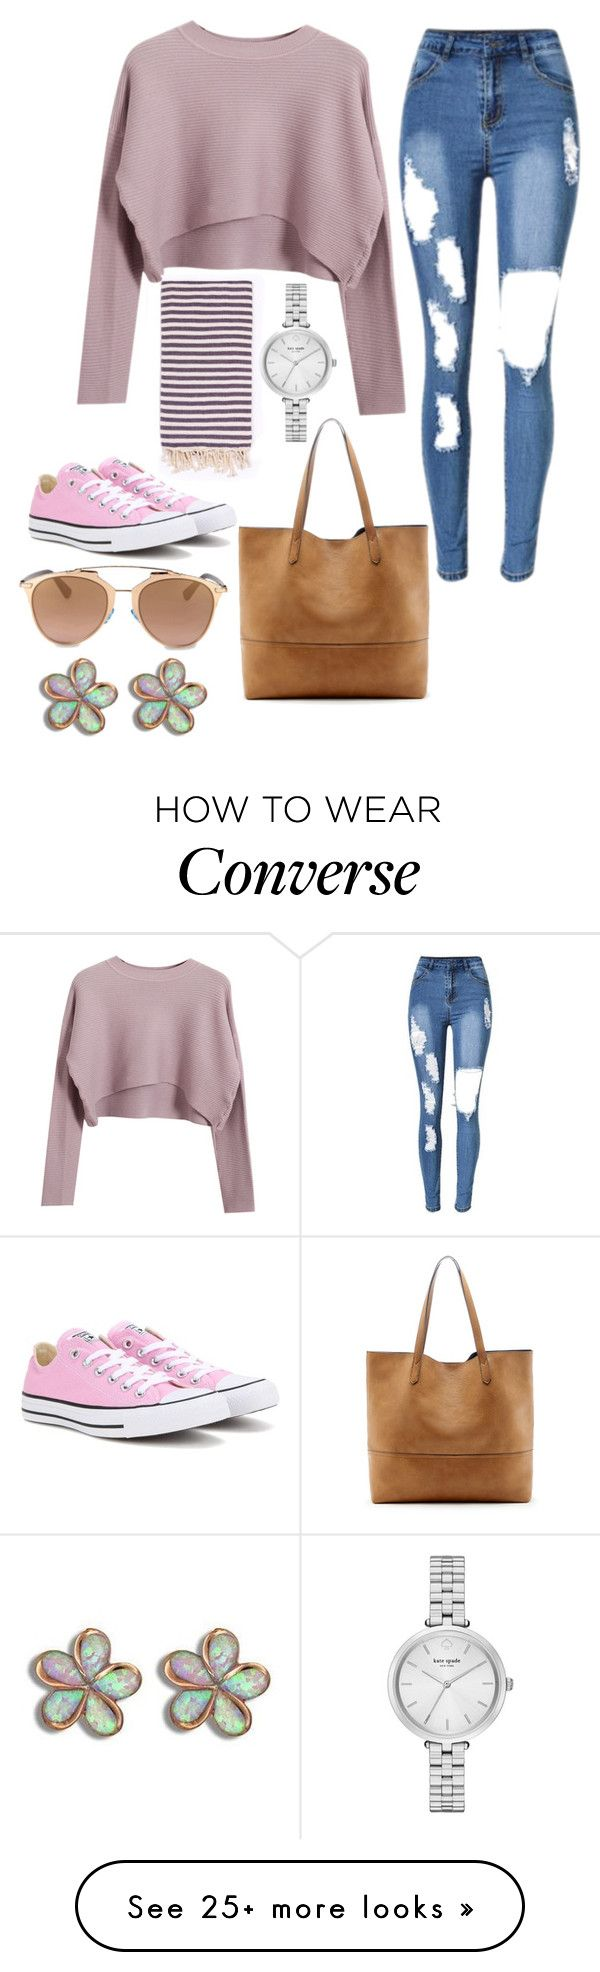 """""""Untitled #9420"""" by beatrizibelo on Polyvore featuring Chicnova Fashion, Turkish-T, Converse, Kate Spade, Sole Society and Christian Dior"""